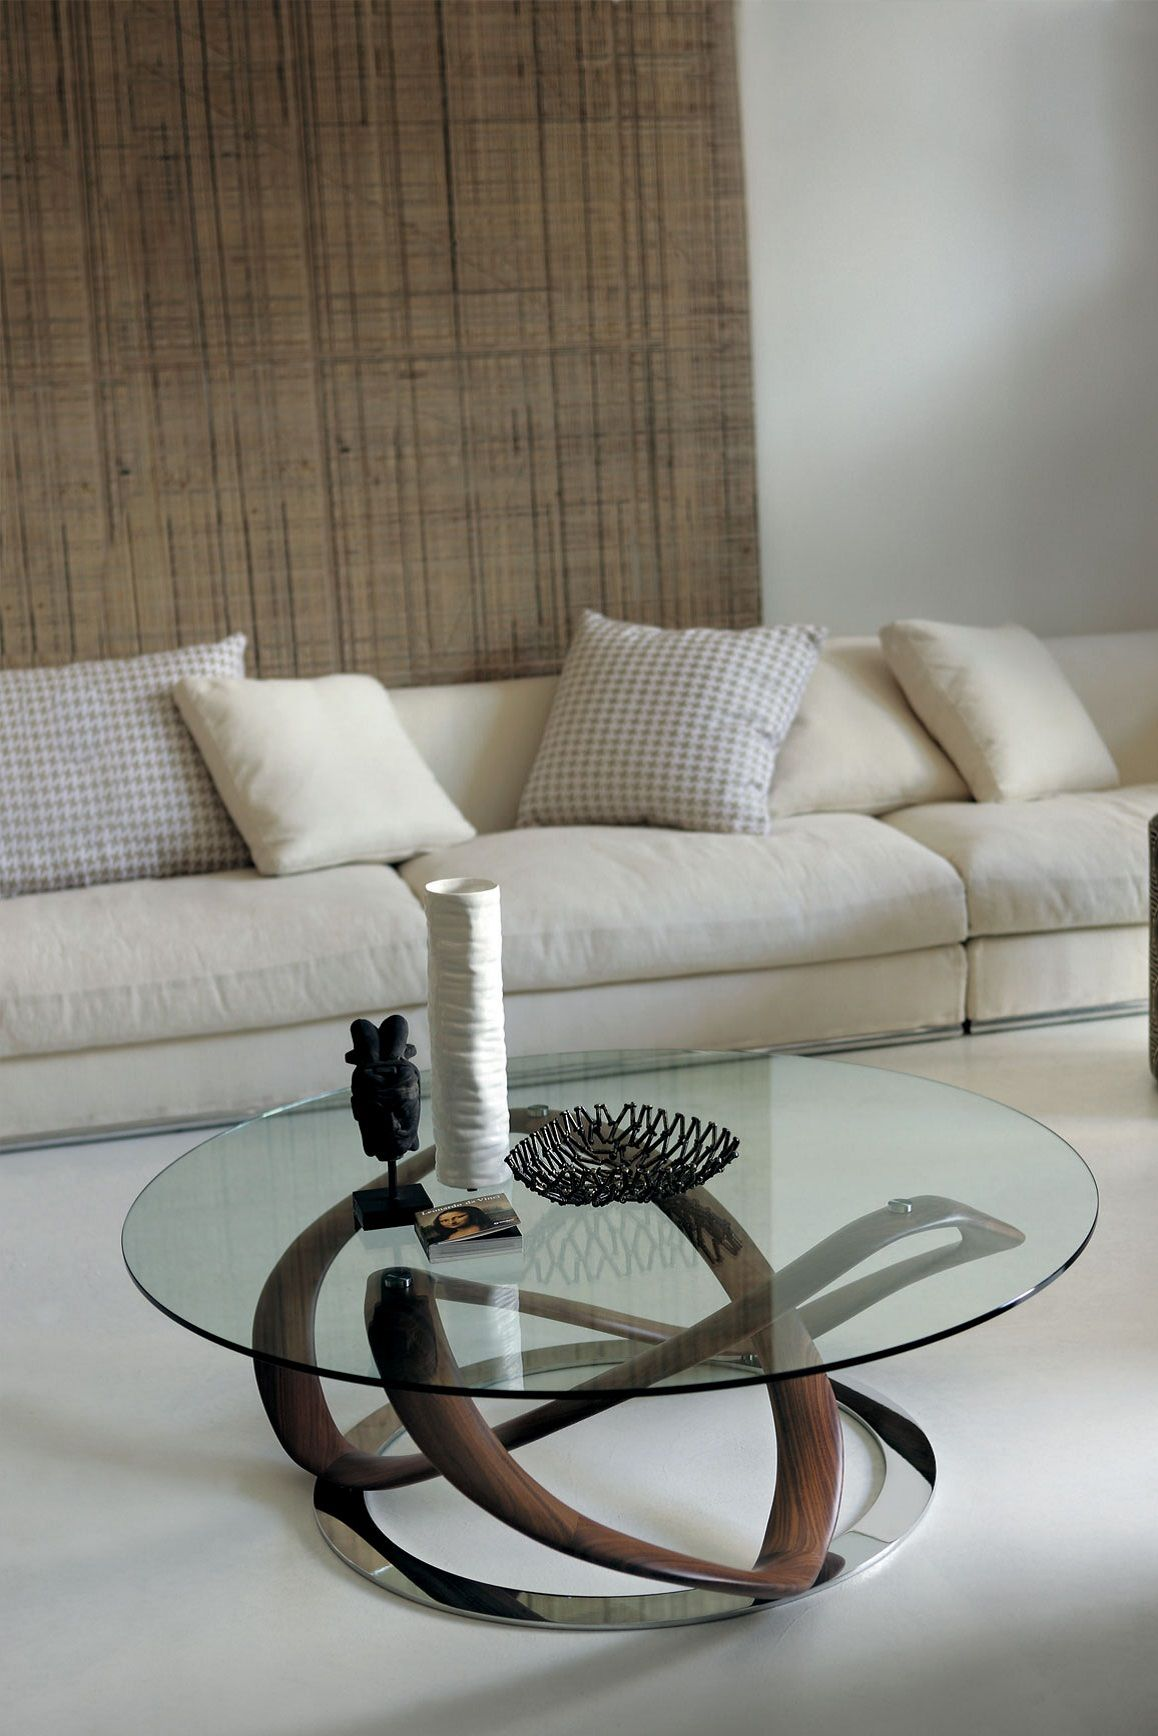 Porada Infinity Coffee Table By Stefano Bigi Everything But Ordinary Coffee Table Modern Centre Table Designs Contemporary Coffee Table [ 1736 x 1158 Pixel ]